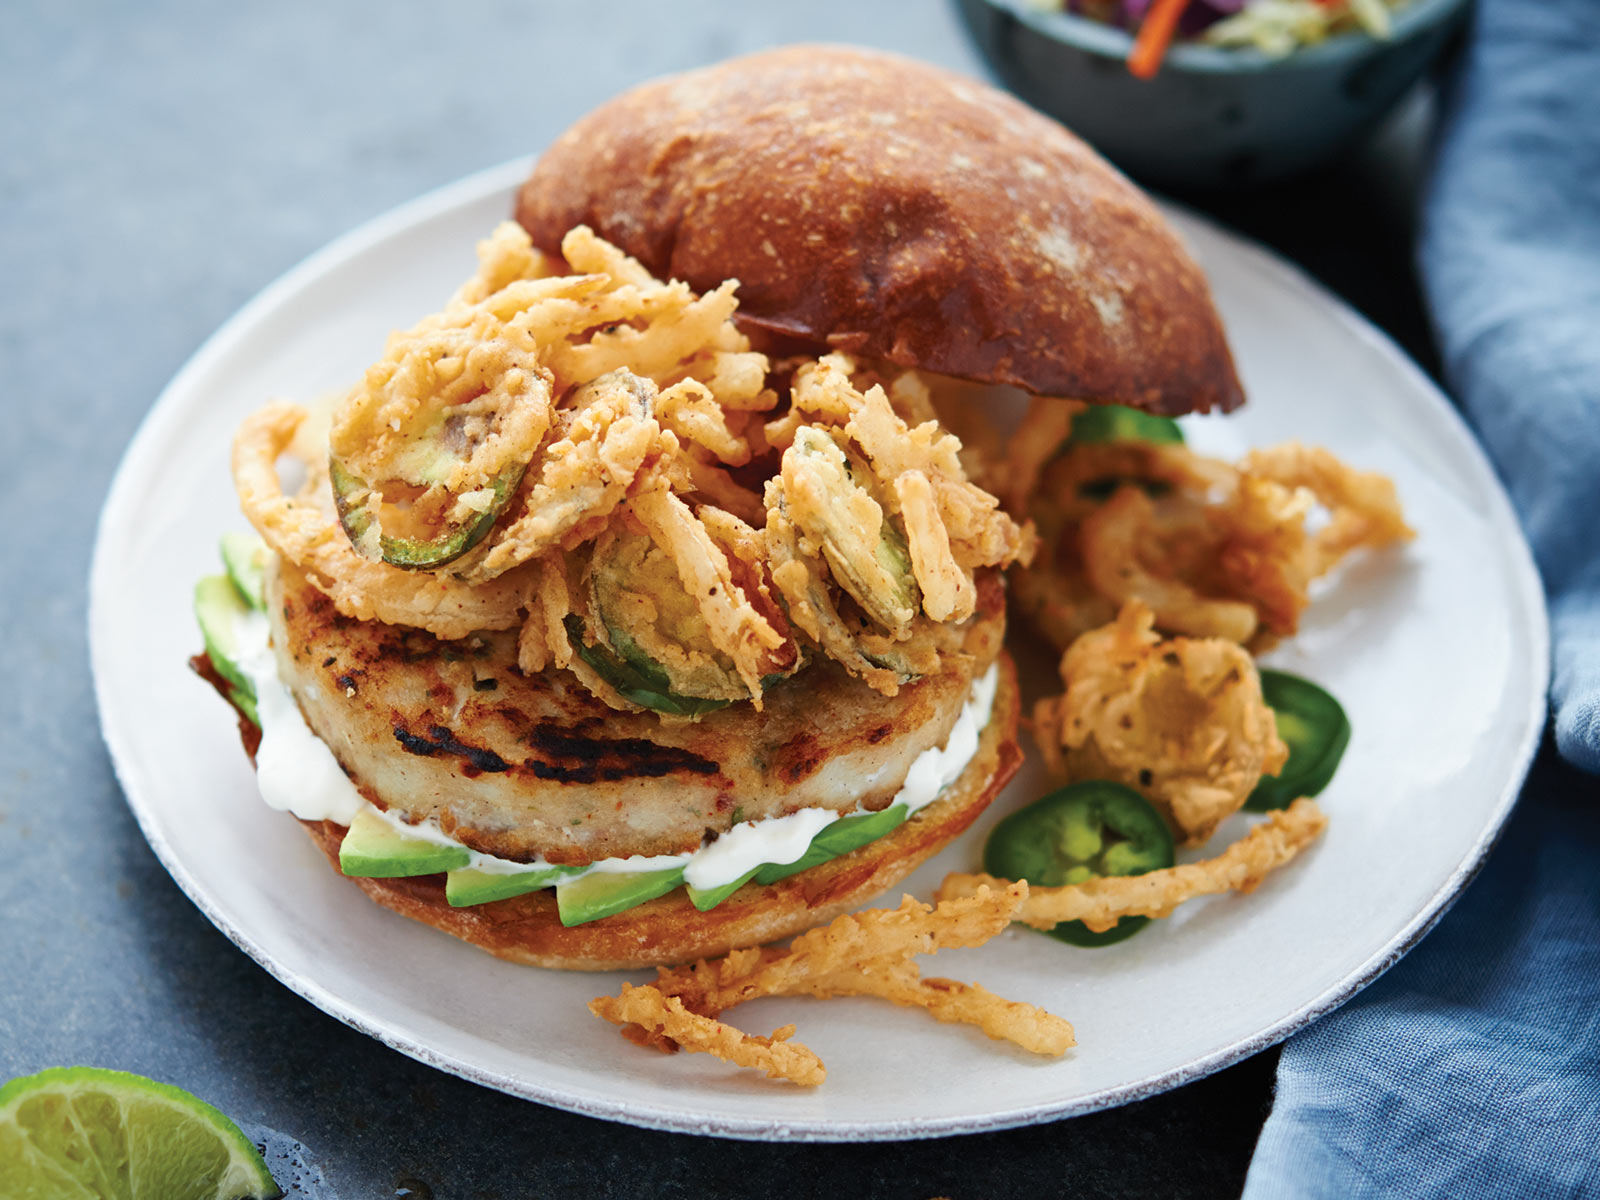 Spicy So-Cal Wild Alaska Pollock Burger